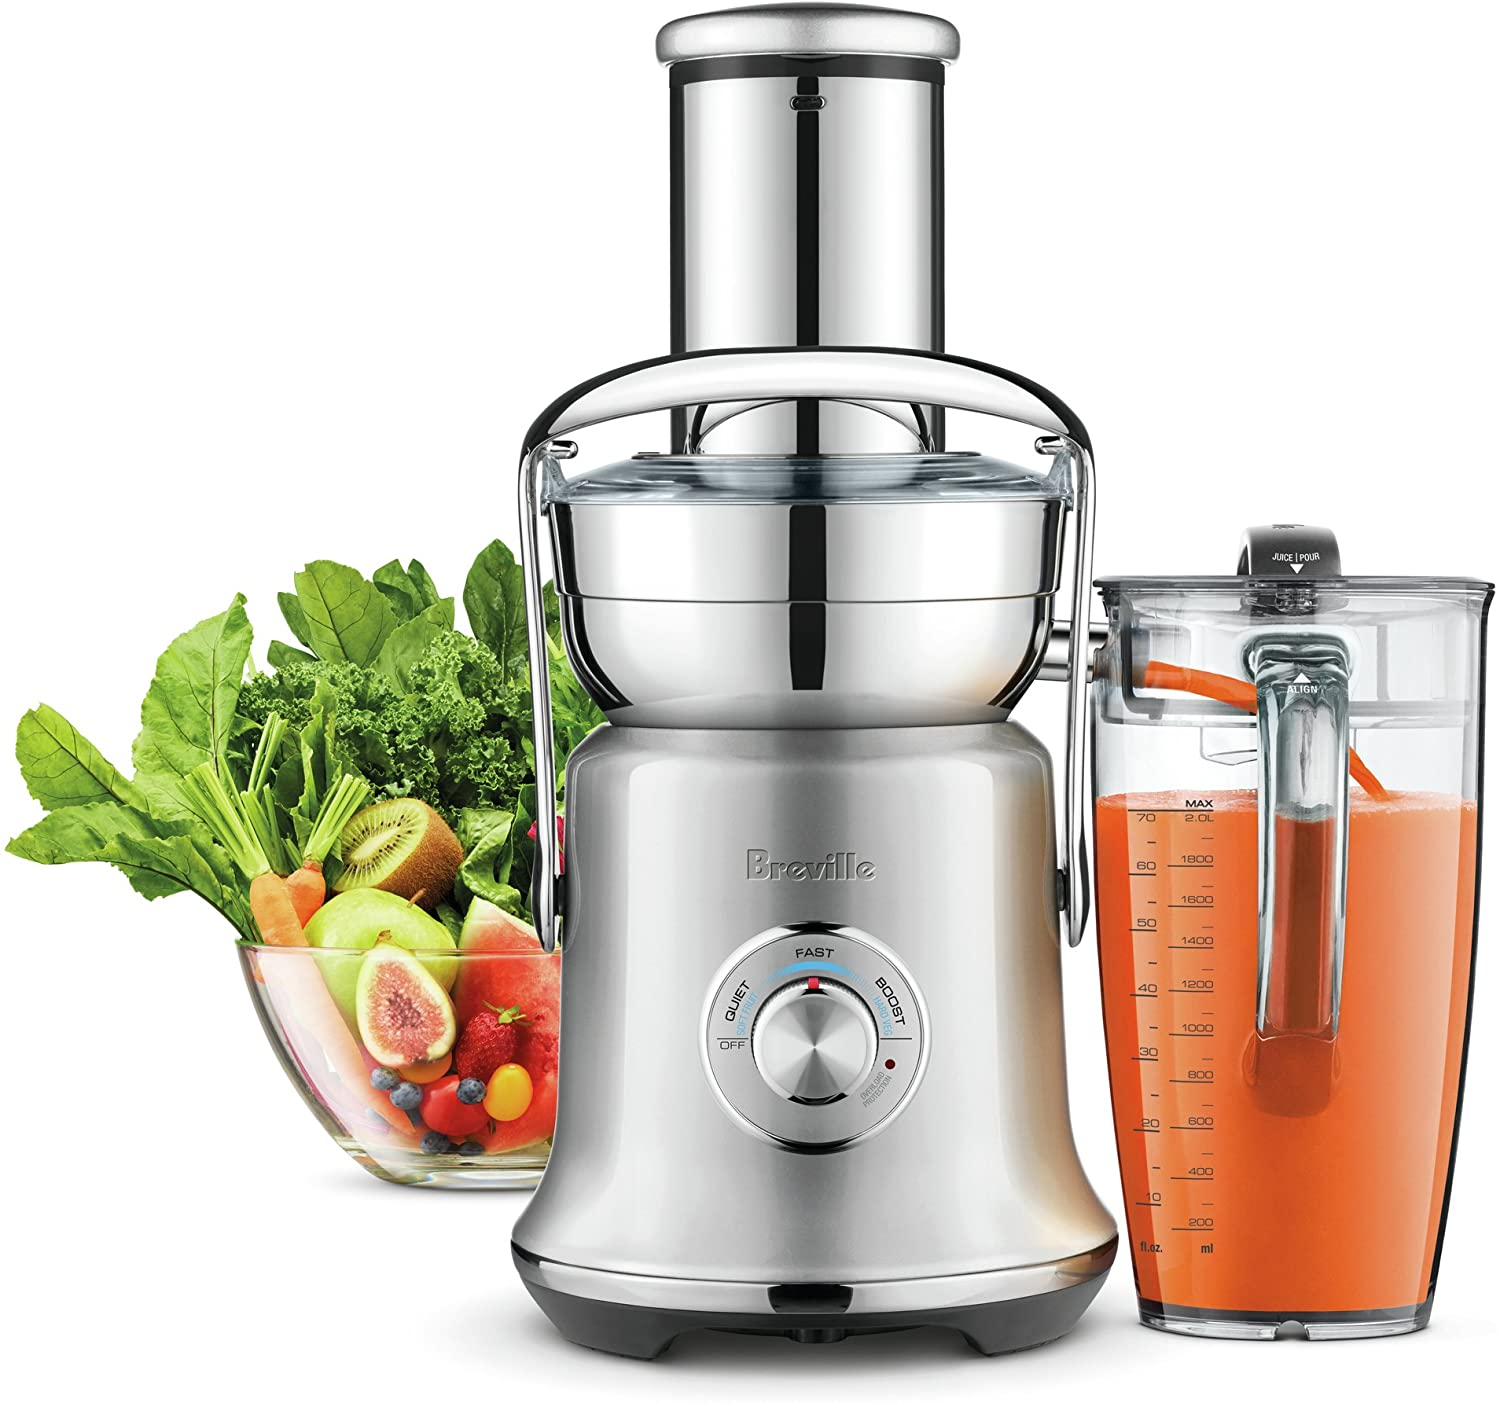 81hD pr1CML. AC SL1500 Best Juicers for Tomatoes 2021 - Reviews & Buying Guide